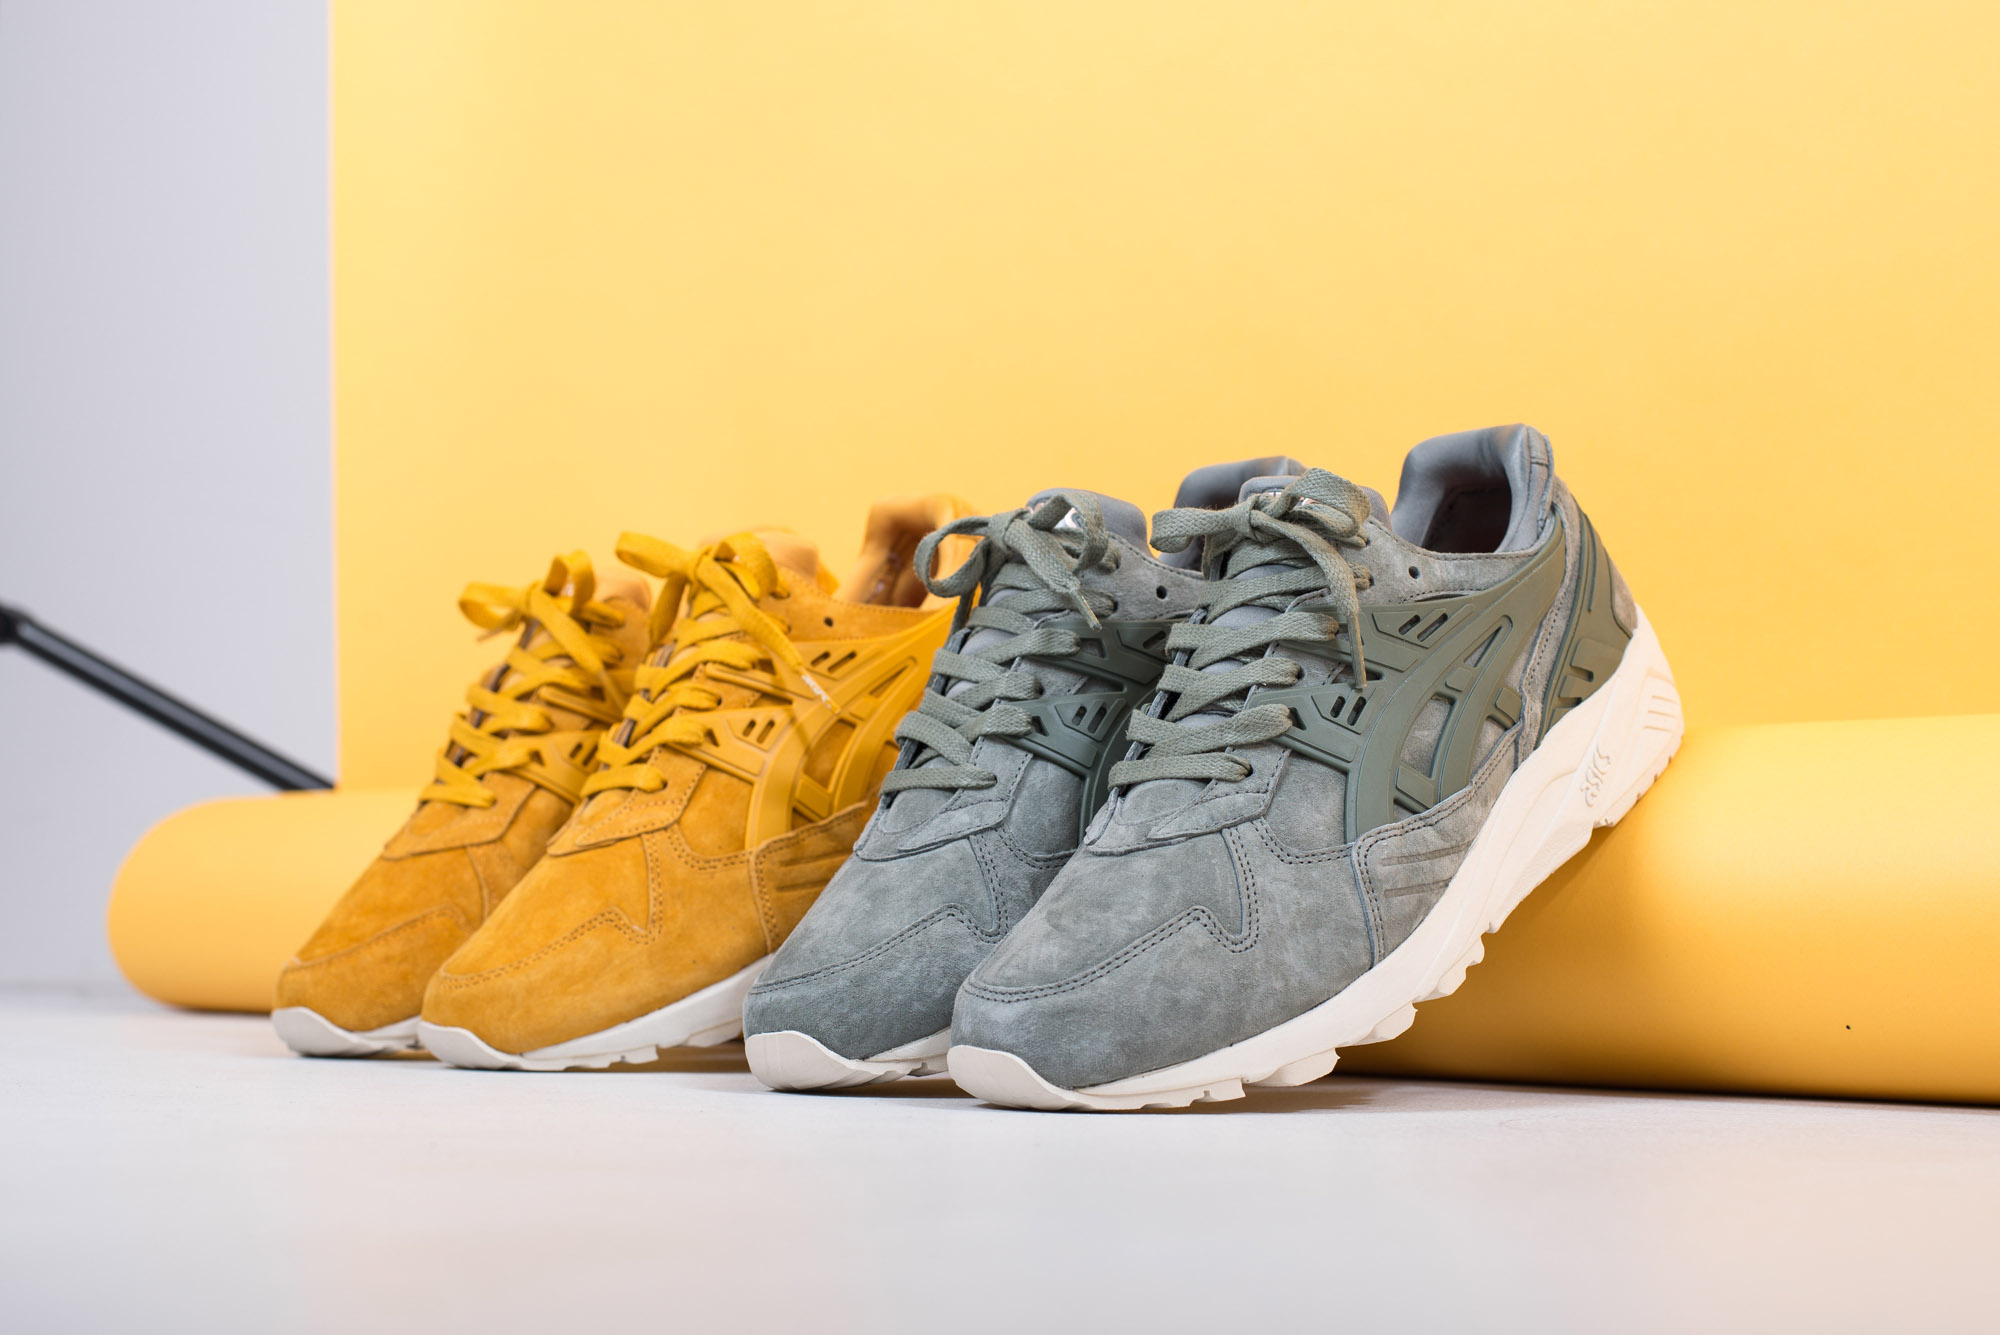 asics Tiger Gel Kayano Trainer Golden Yellow Agave Green 4